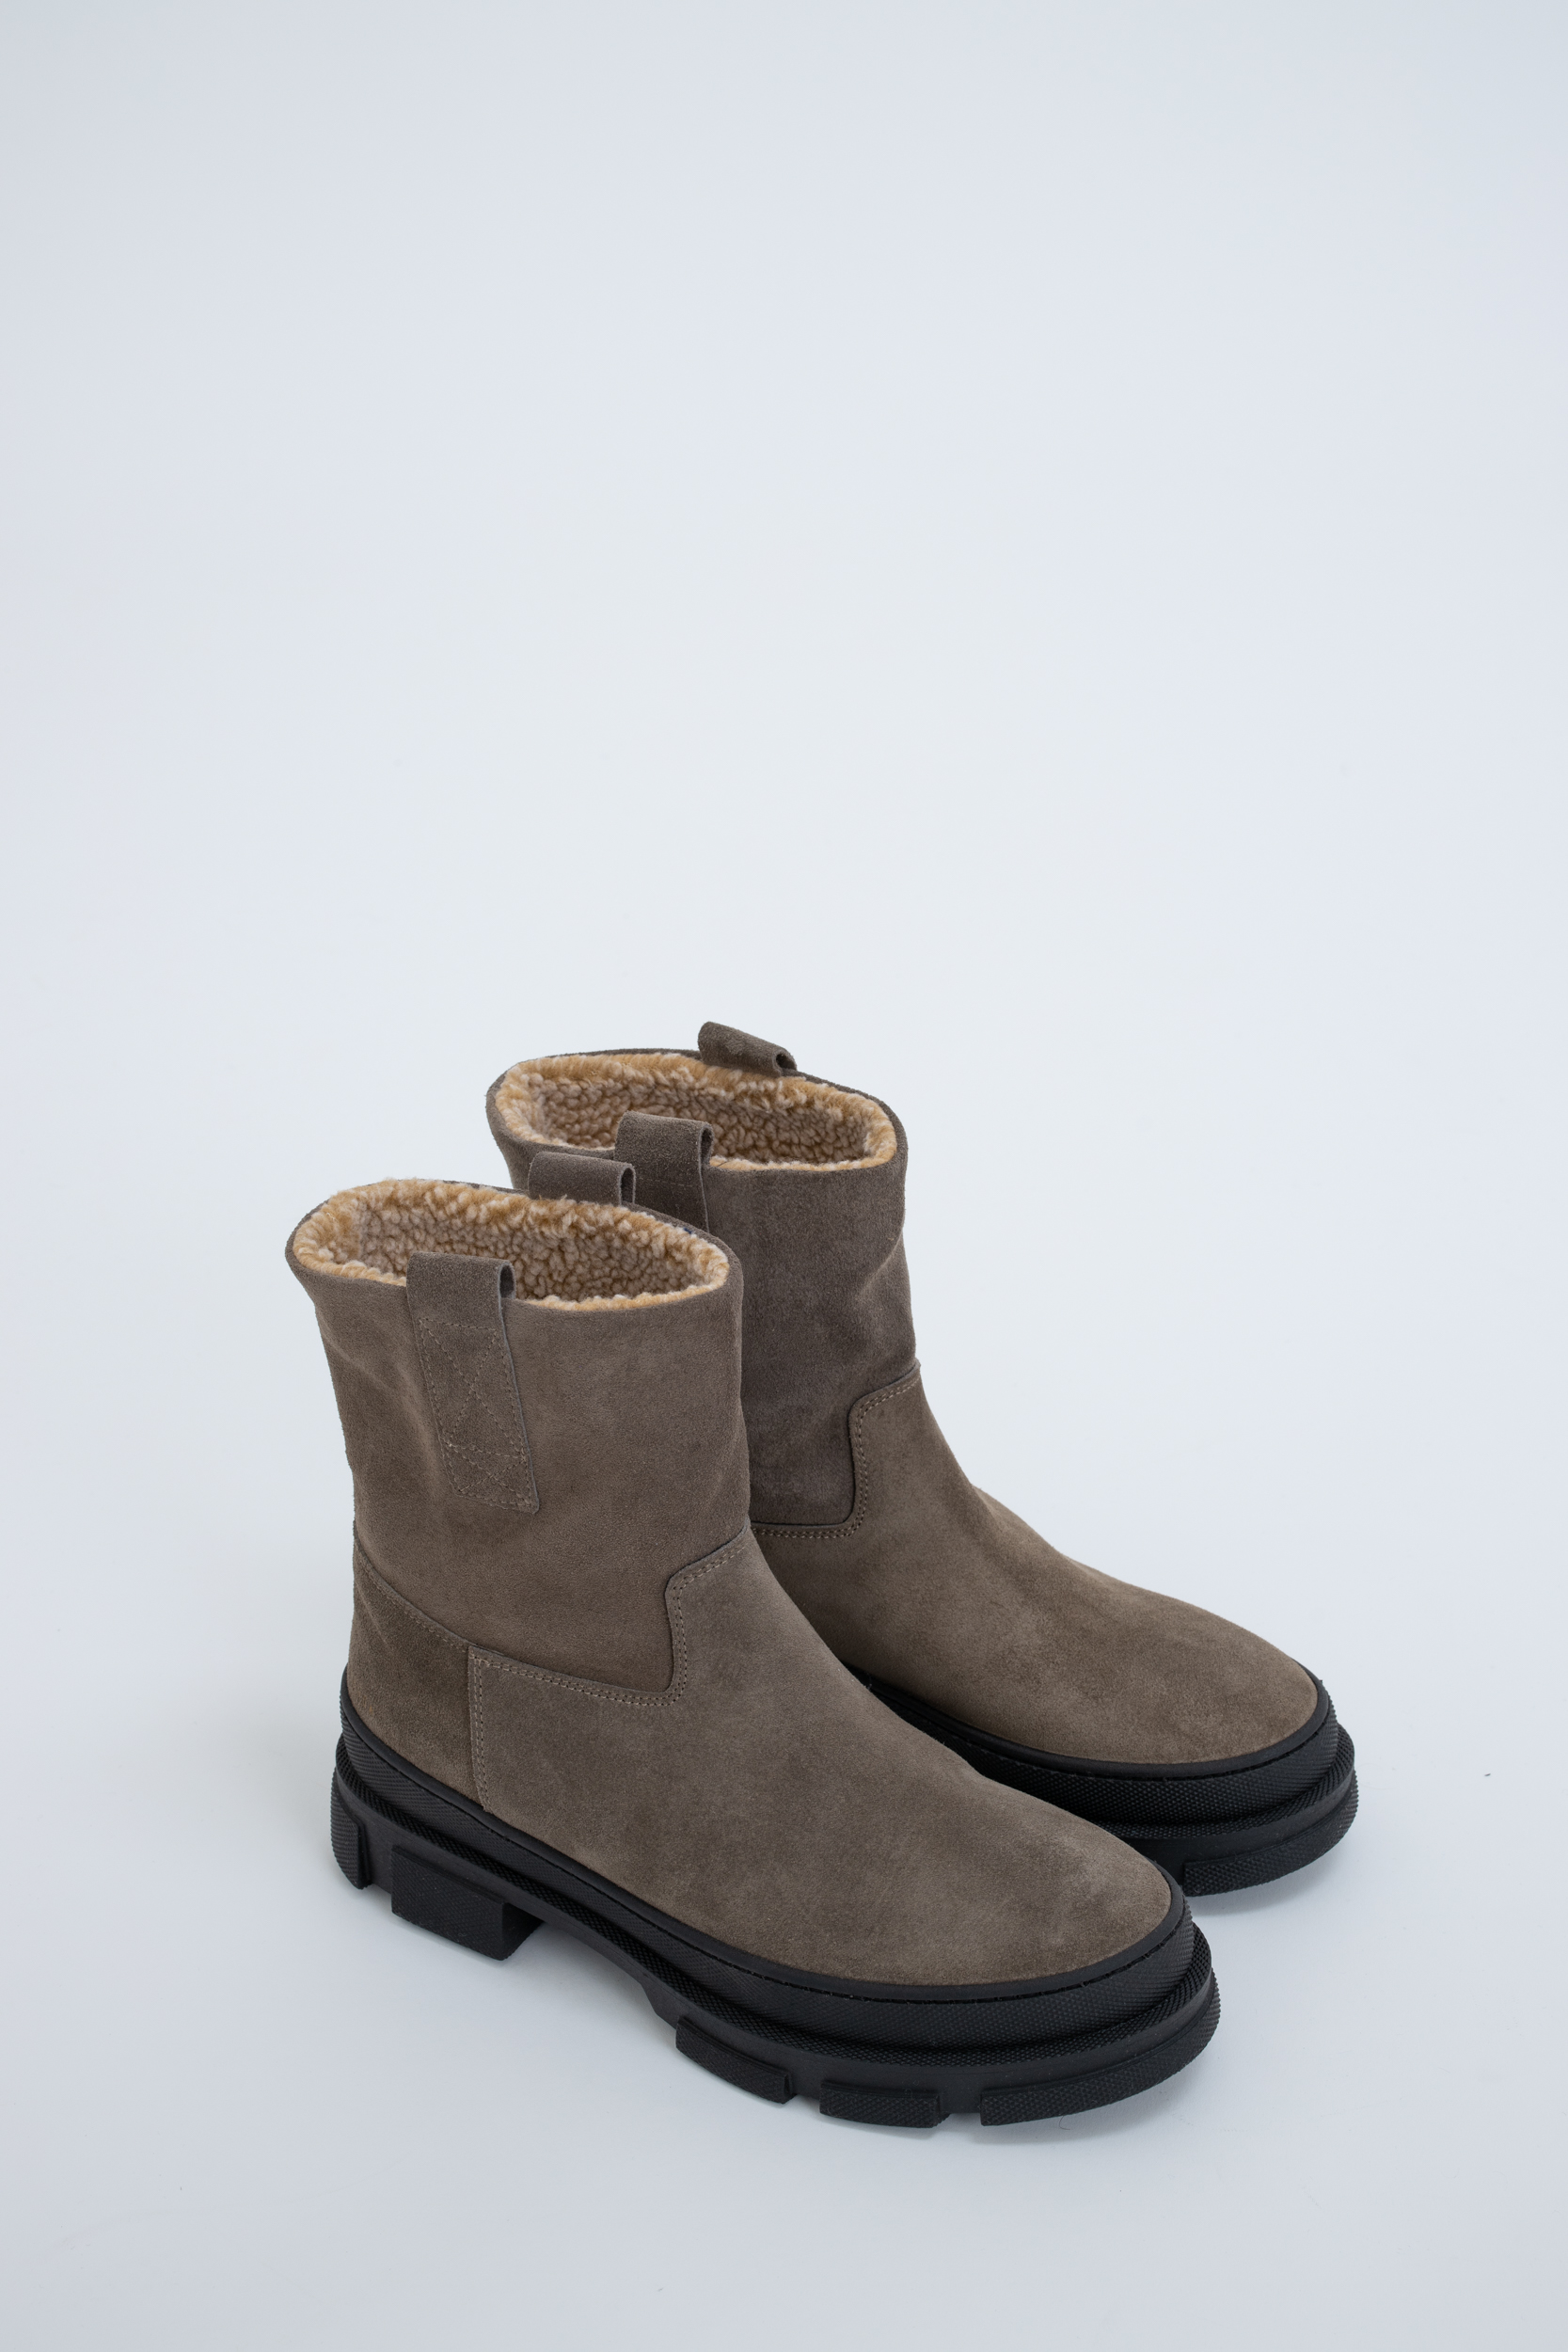 Boots CPH507 Crosta Taupe